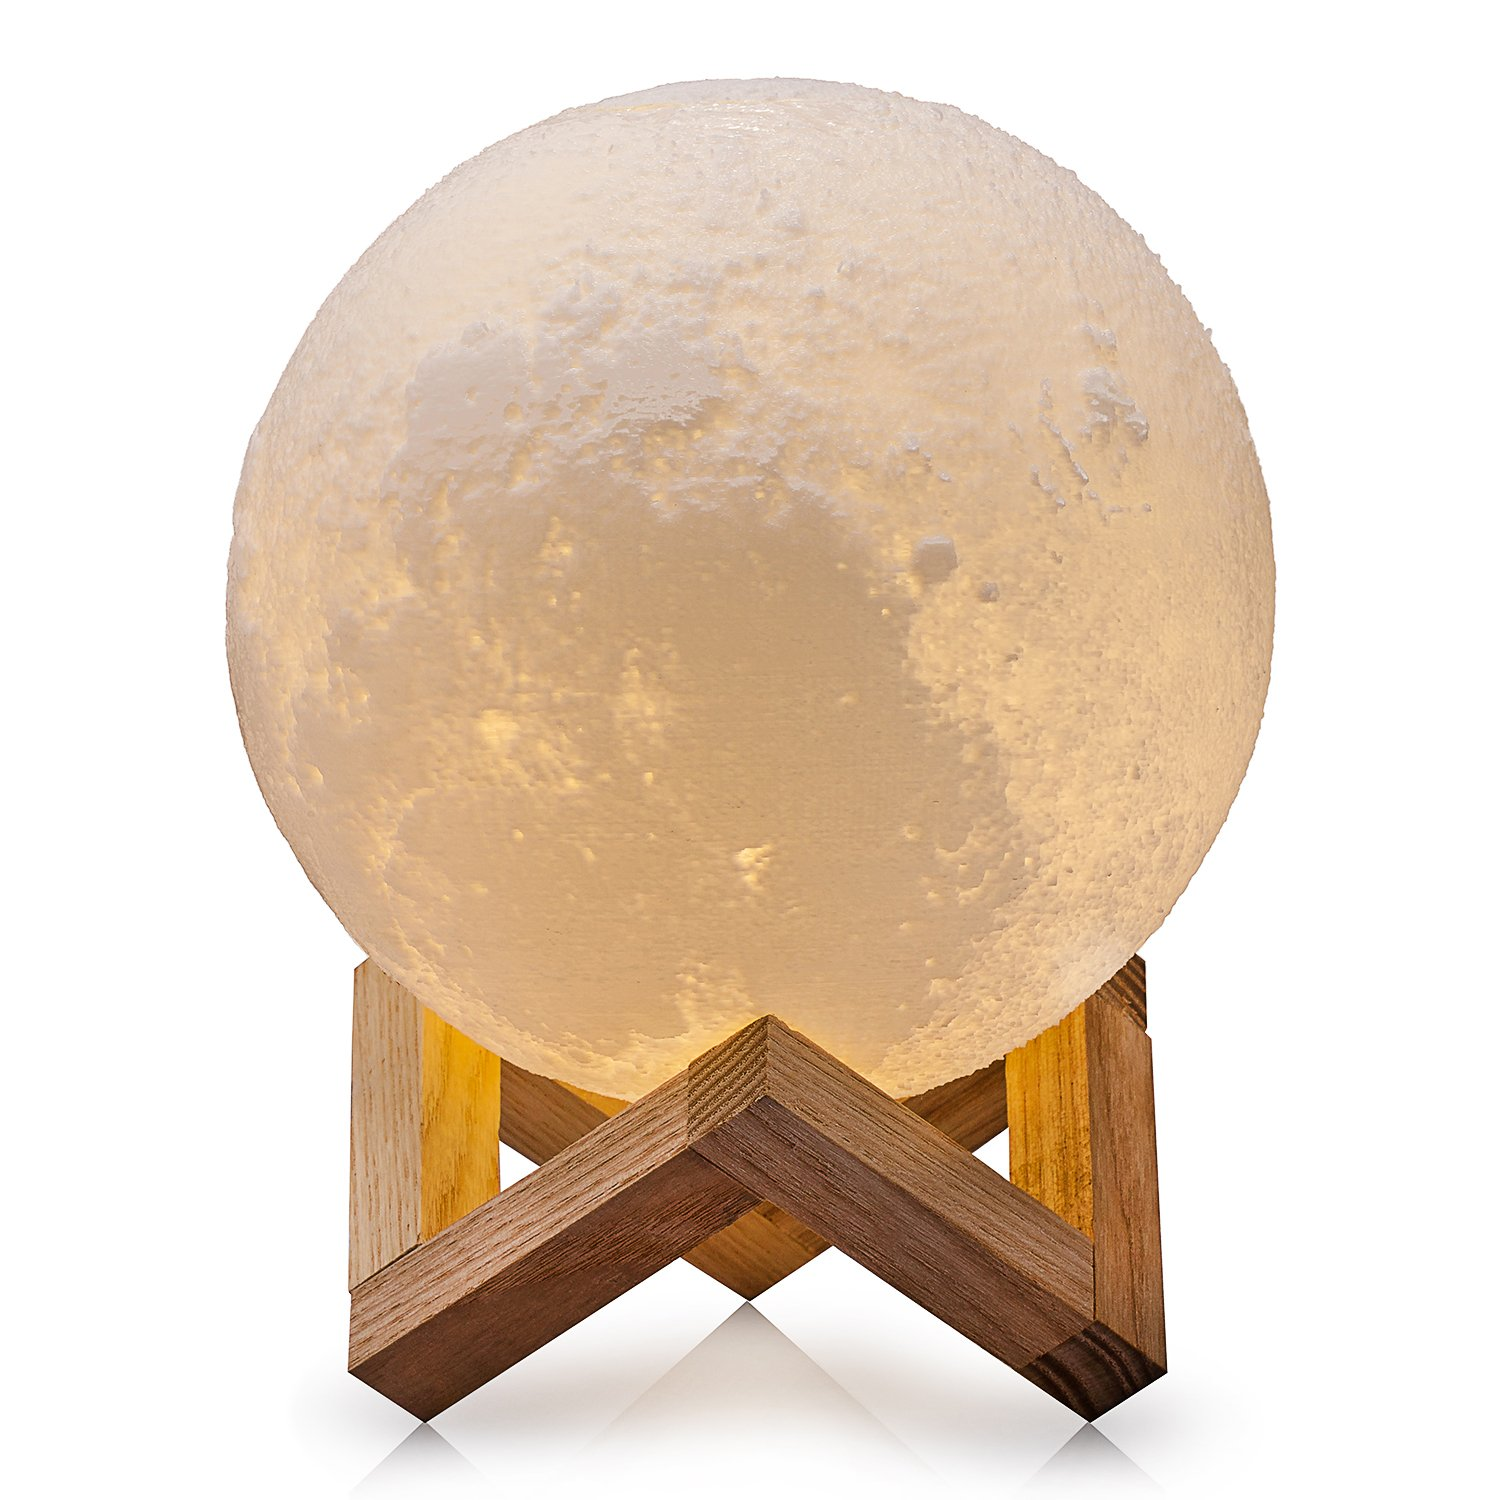 CPLA Lighting Night Light LED 3D Printing Moon Lamp, Warm and Cool White Dimmable Touch Control Brightness 3000K/6000K with USB Charging, Rechargeable Home Decorative Light by CPLA